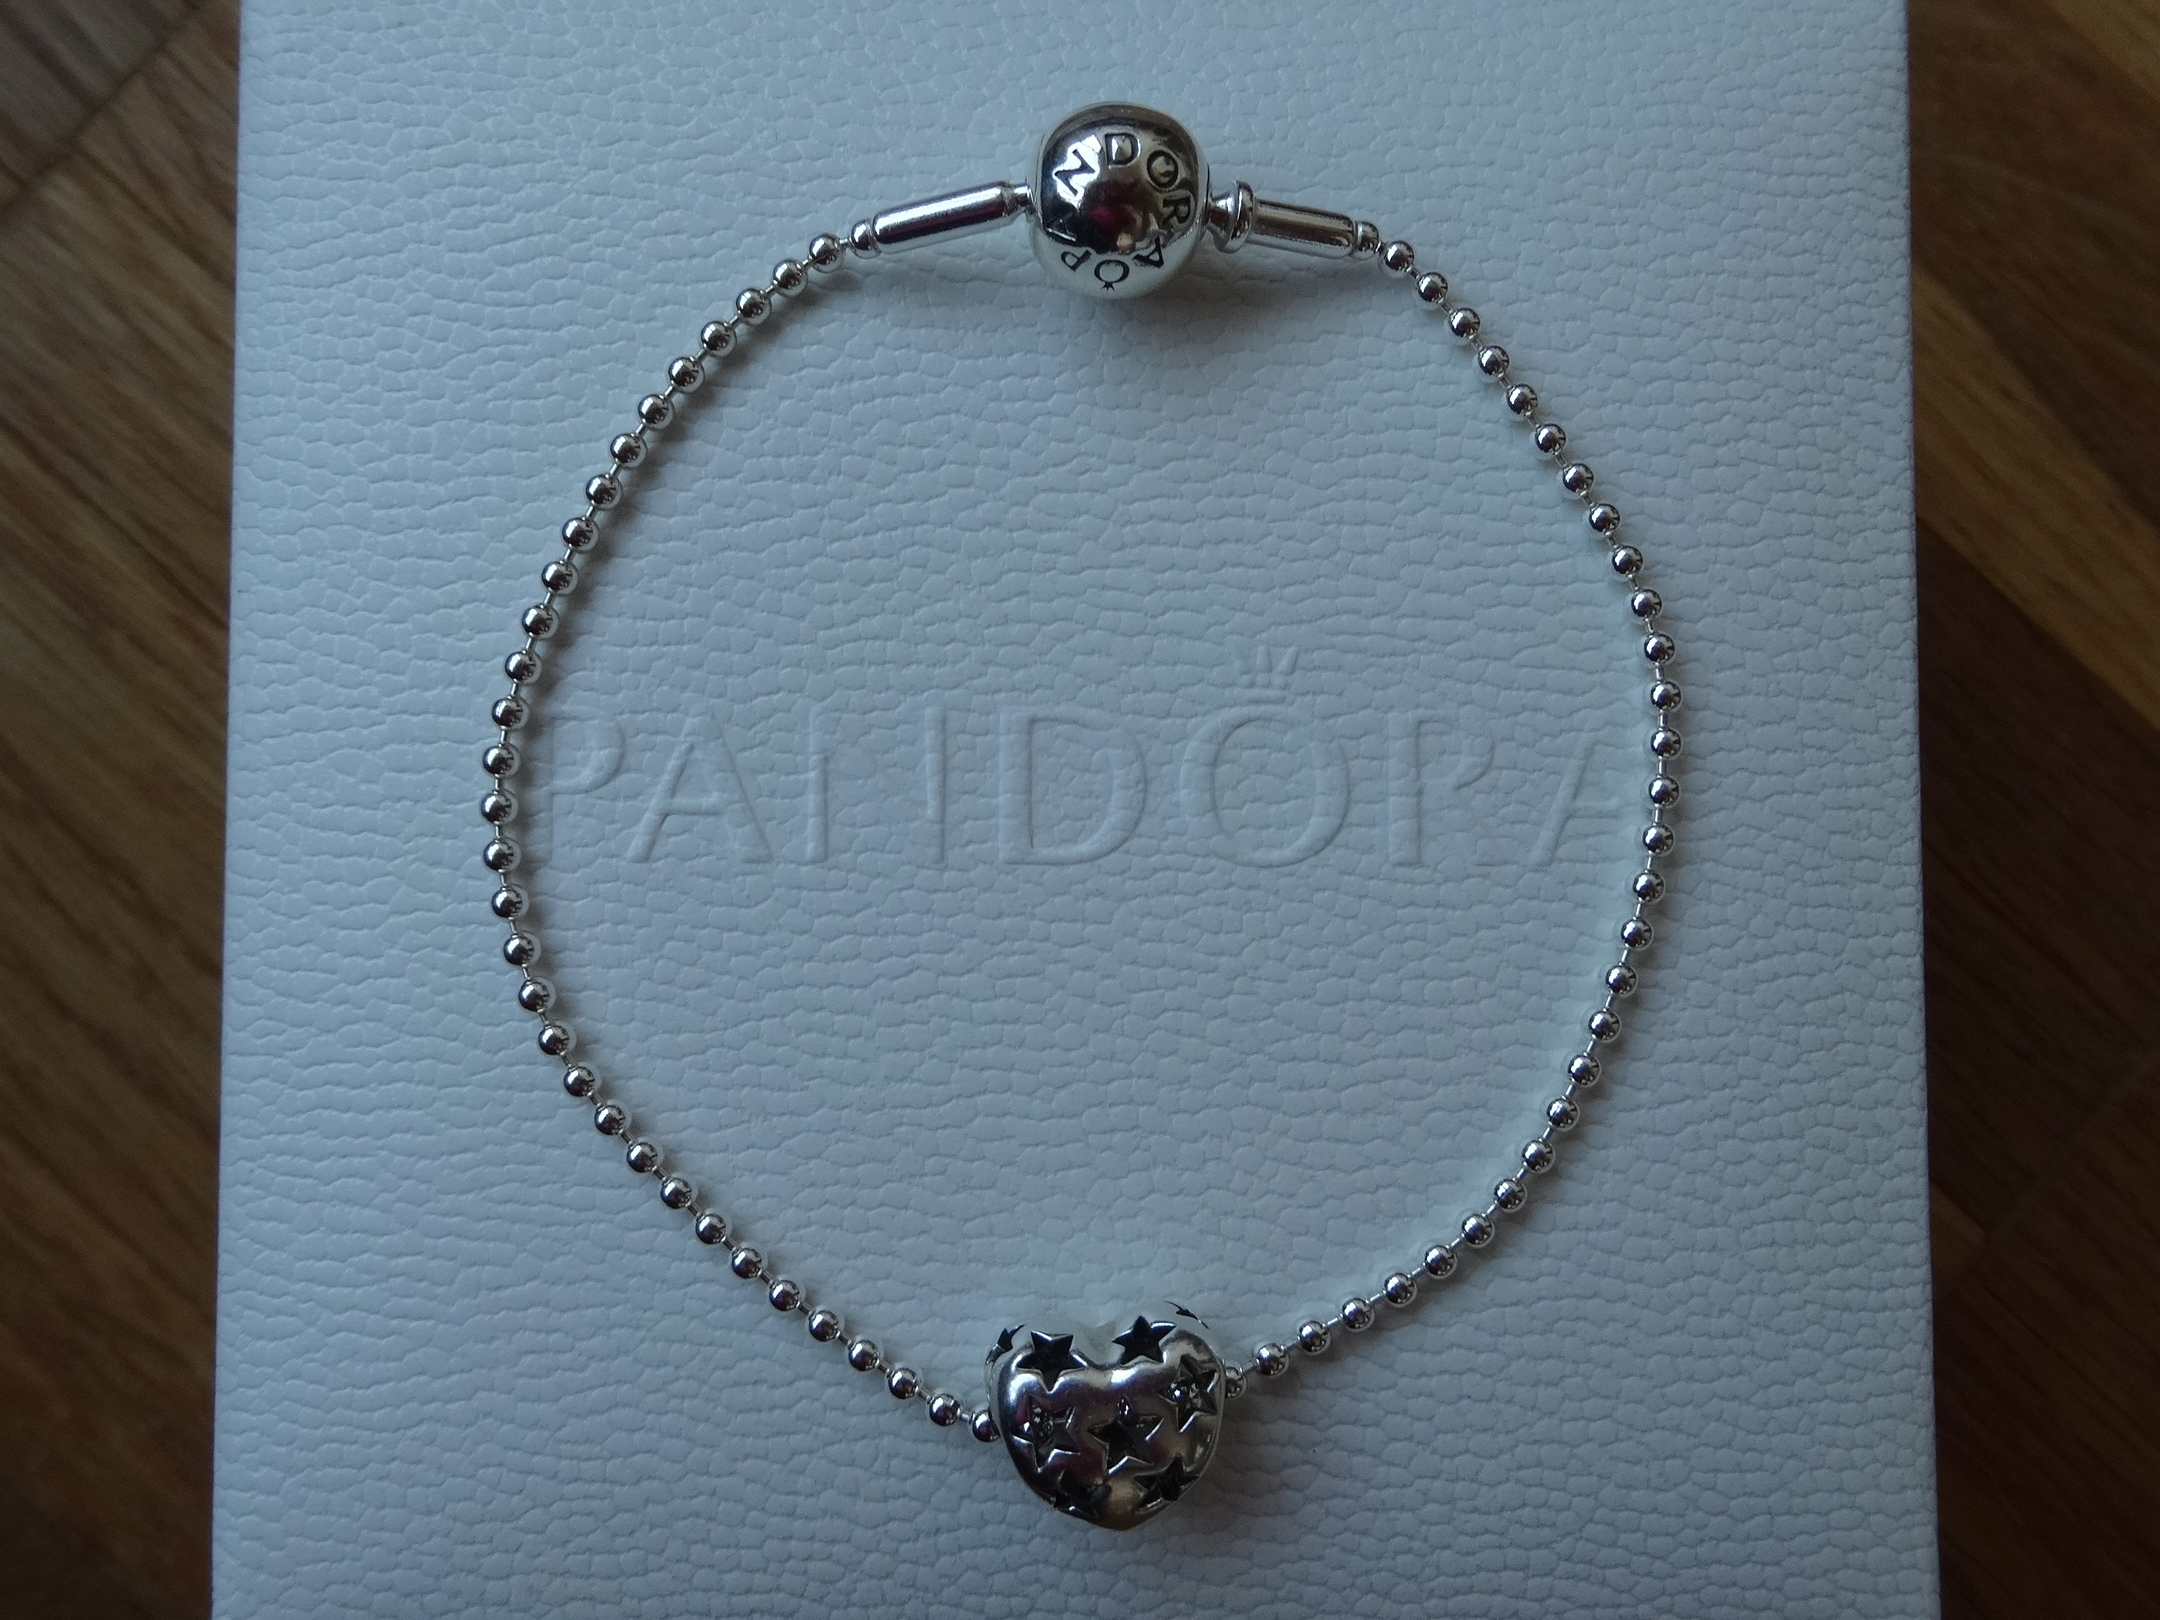 Pandora Essence bracelet with open work heart bead